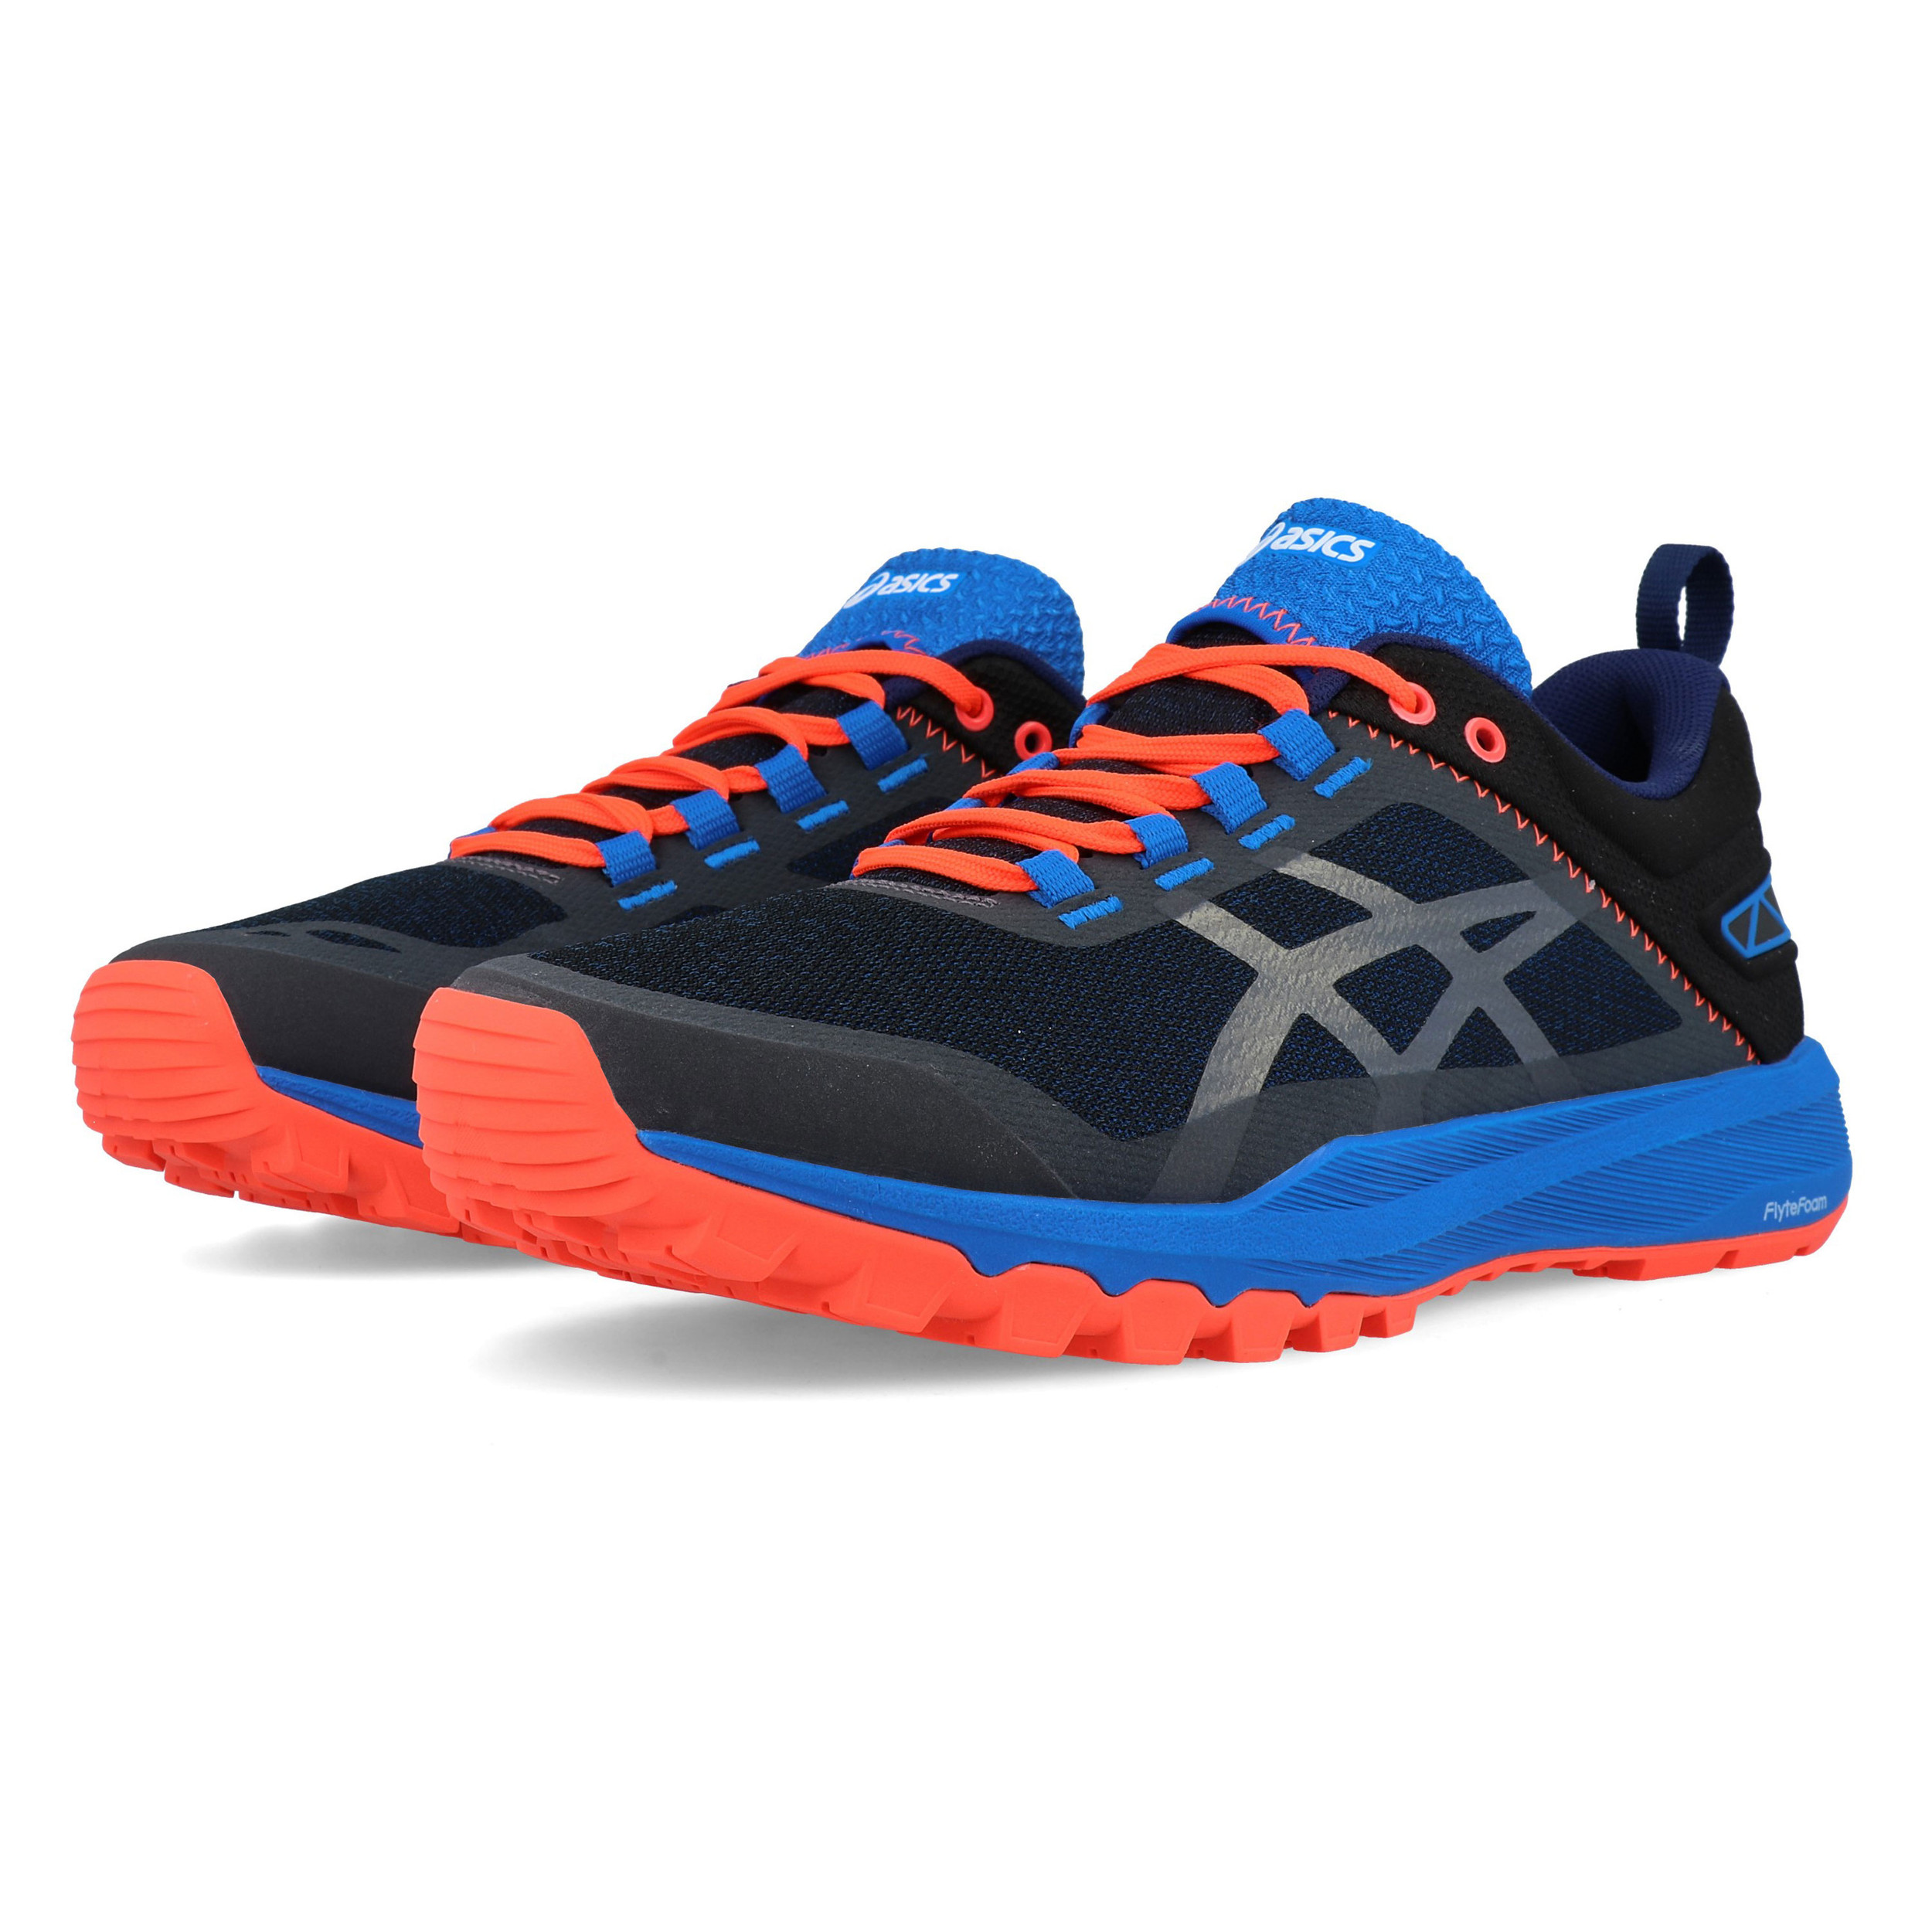 Details about Asics Mens FujiLyte XT Trail Running Shoes Trainers Black Blue Sports